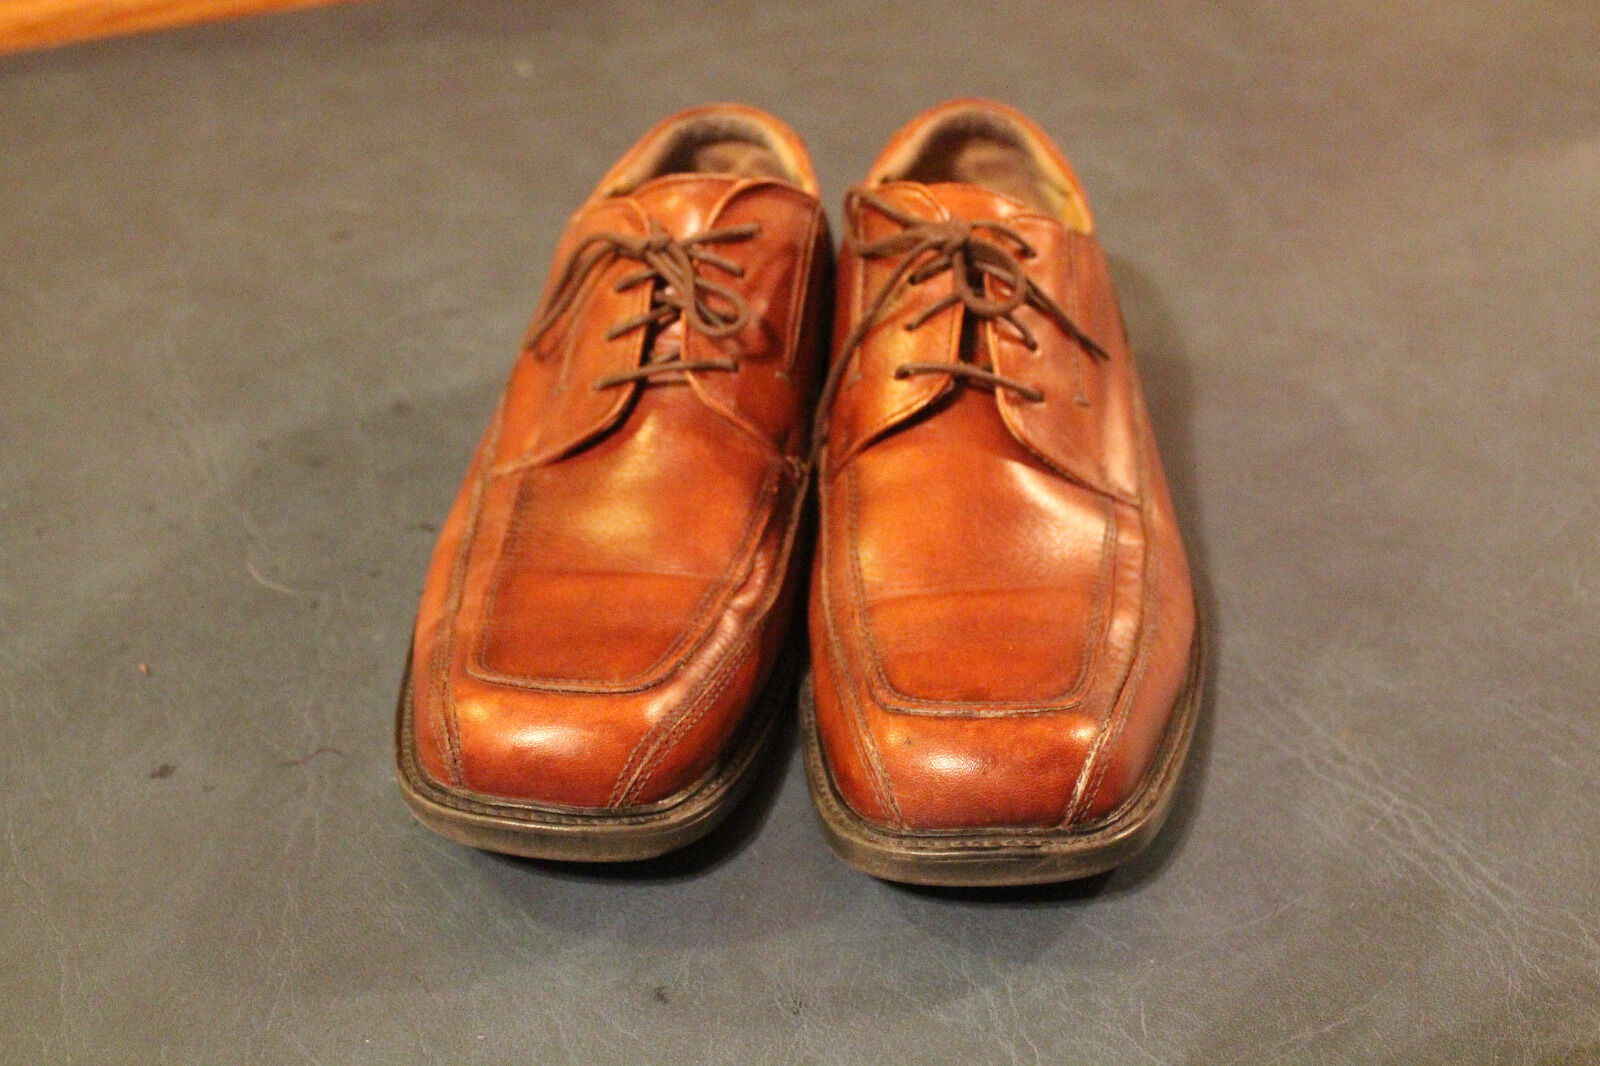 DOCKERS MENS PRO STYLE BROWN LEATHER DRESS OXFORD SHOES STYLE size 9.5M 090-3173